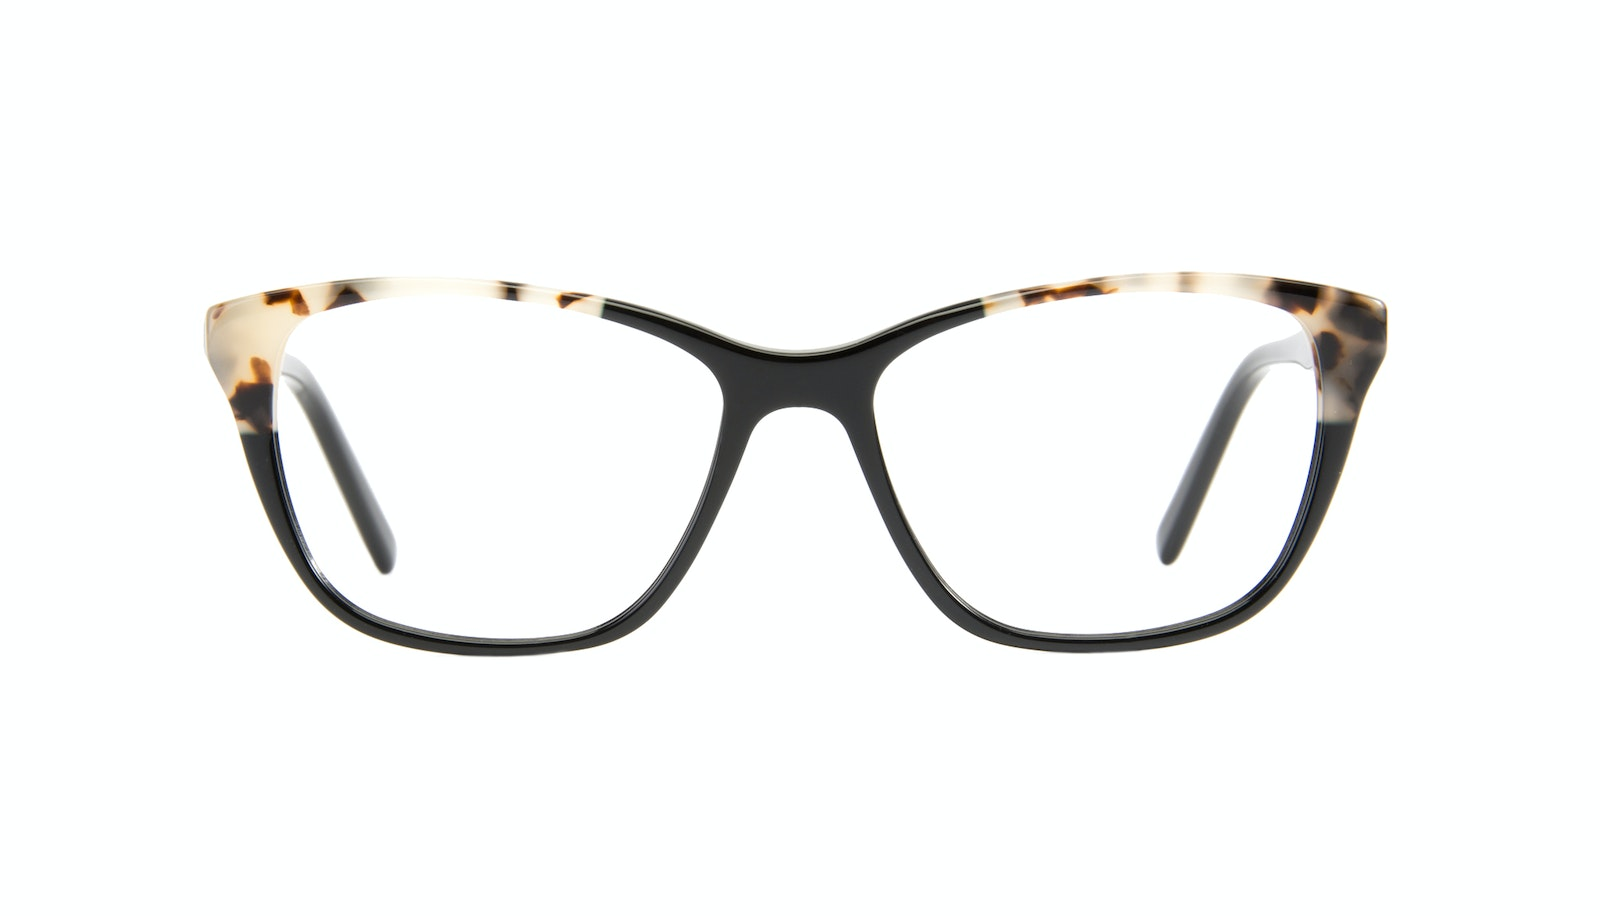 98d809d321520 Affordable Fashion Glasses Cat Eye Eyeglasses Women Myrtle Petite Ebony  Granite